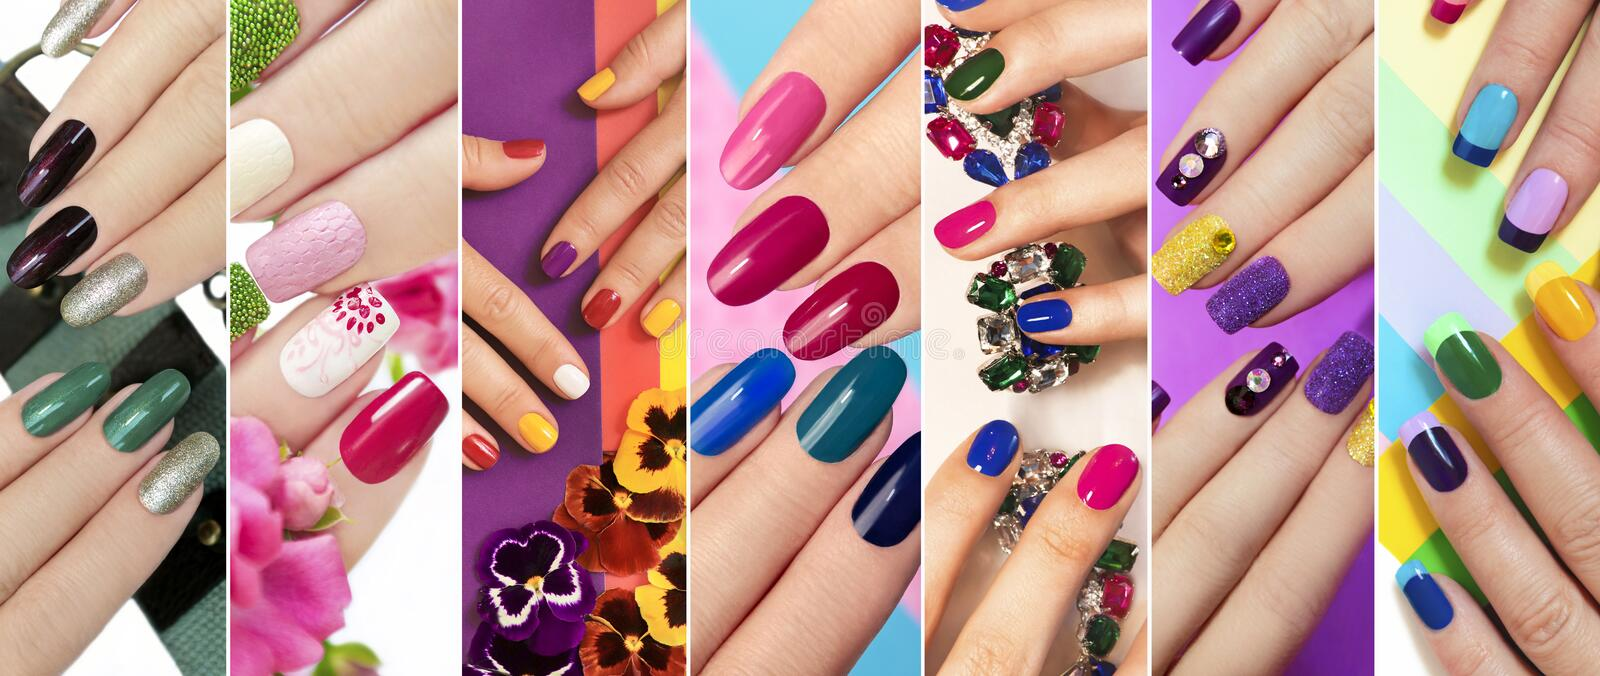 Solid color manicure with bright nail polishes. A diverse range of nail design.Solid color manicure with bright nail polishes.Collage by nail art royalty free stock photo